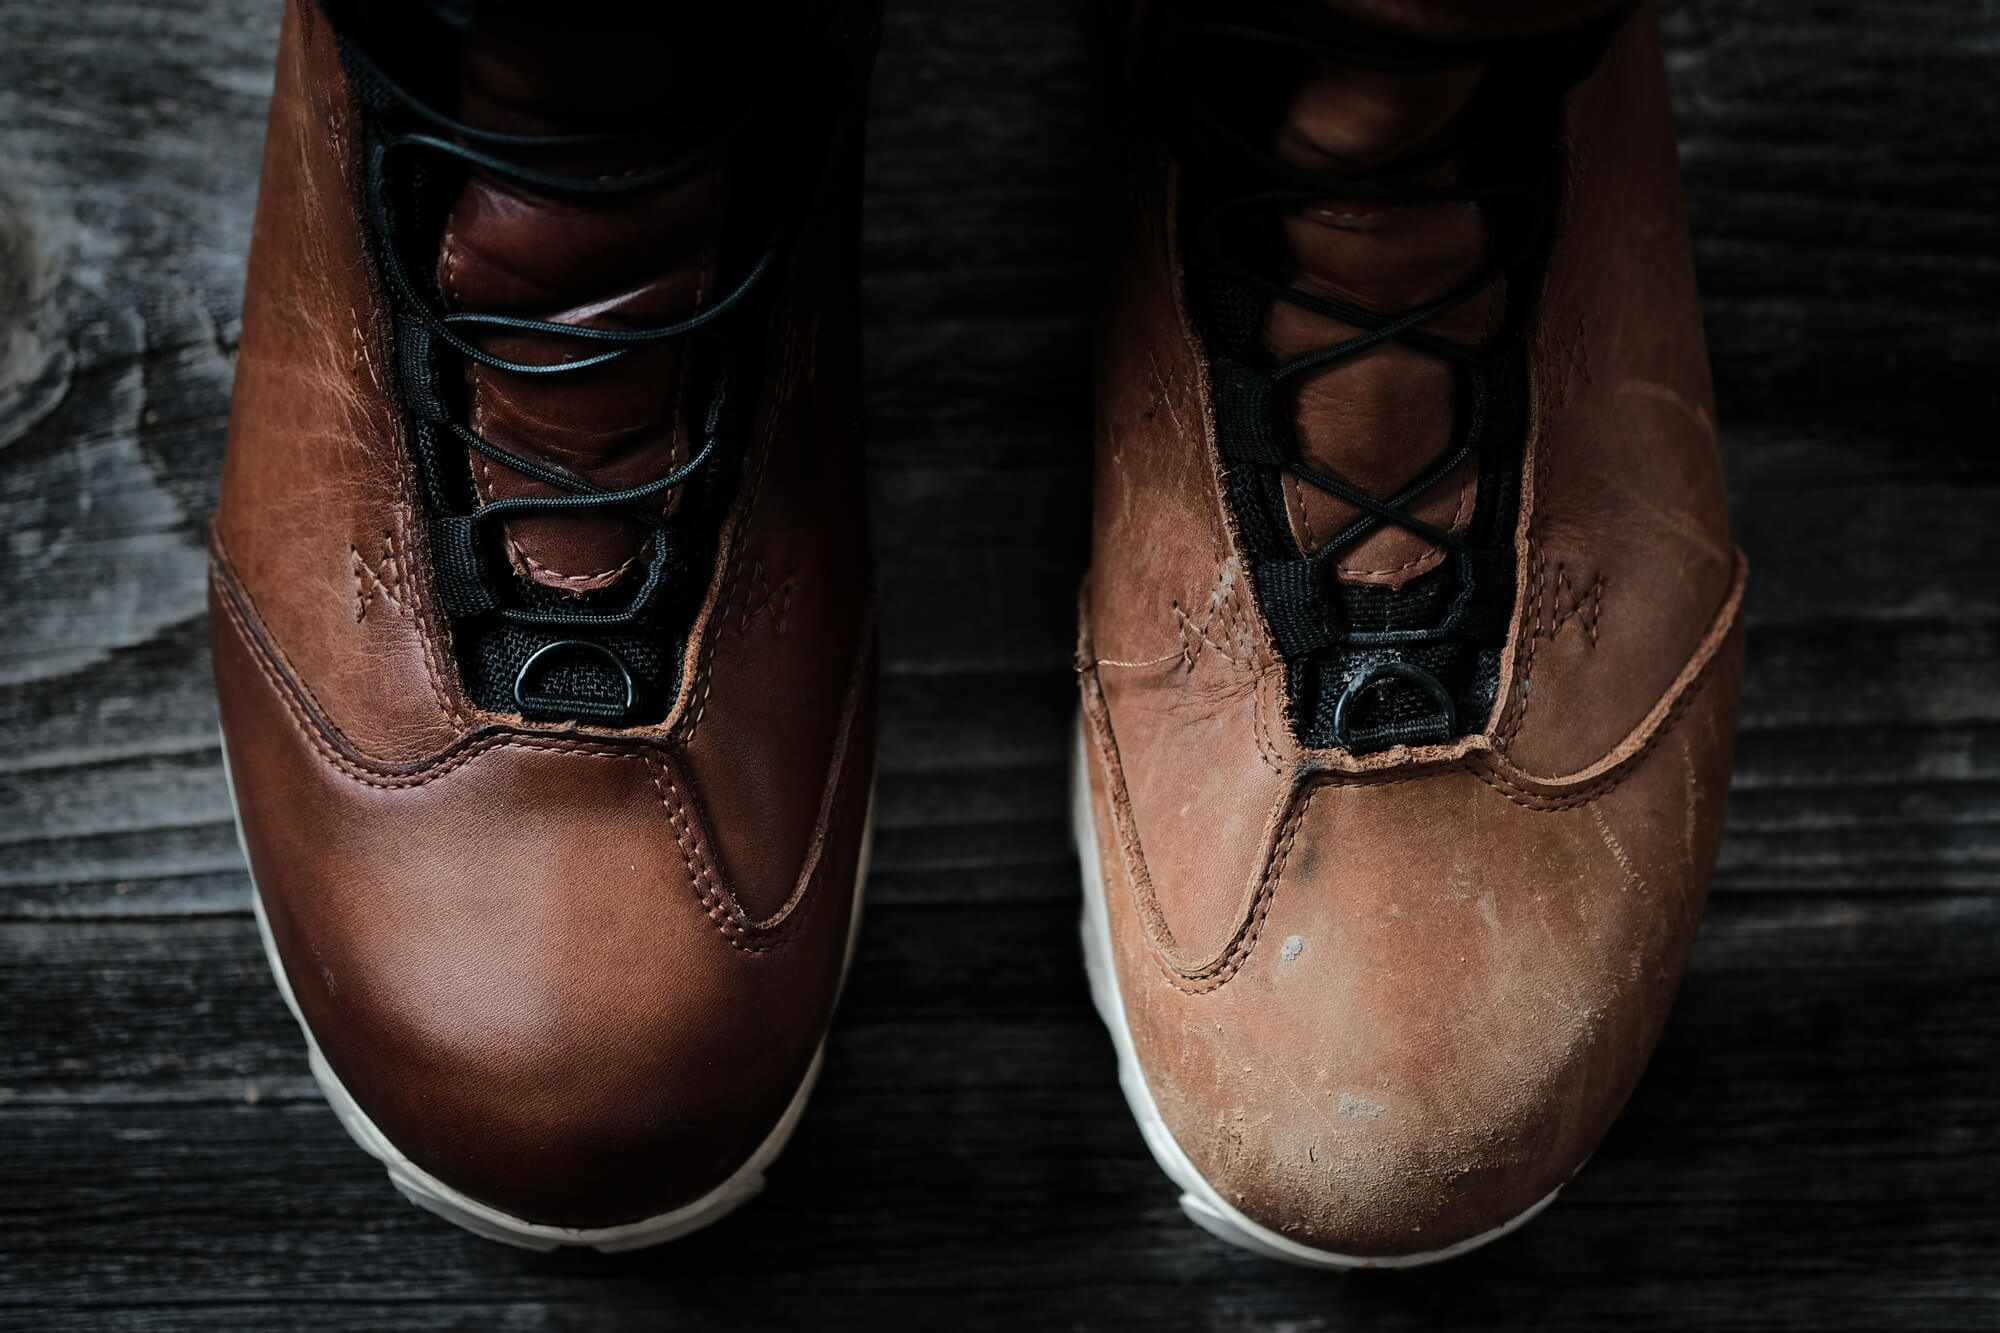 Comparing the left and right Wolvhammer boots with a closeup of the toebox